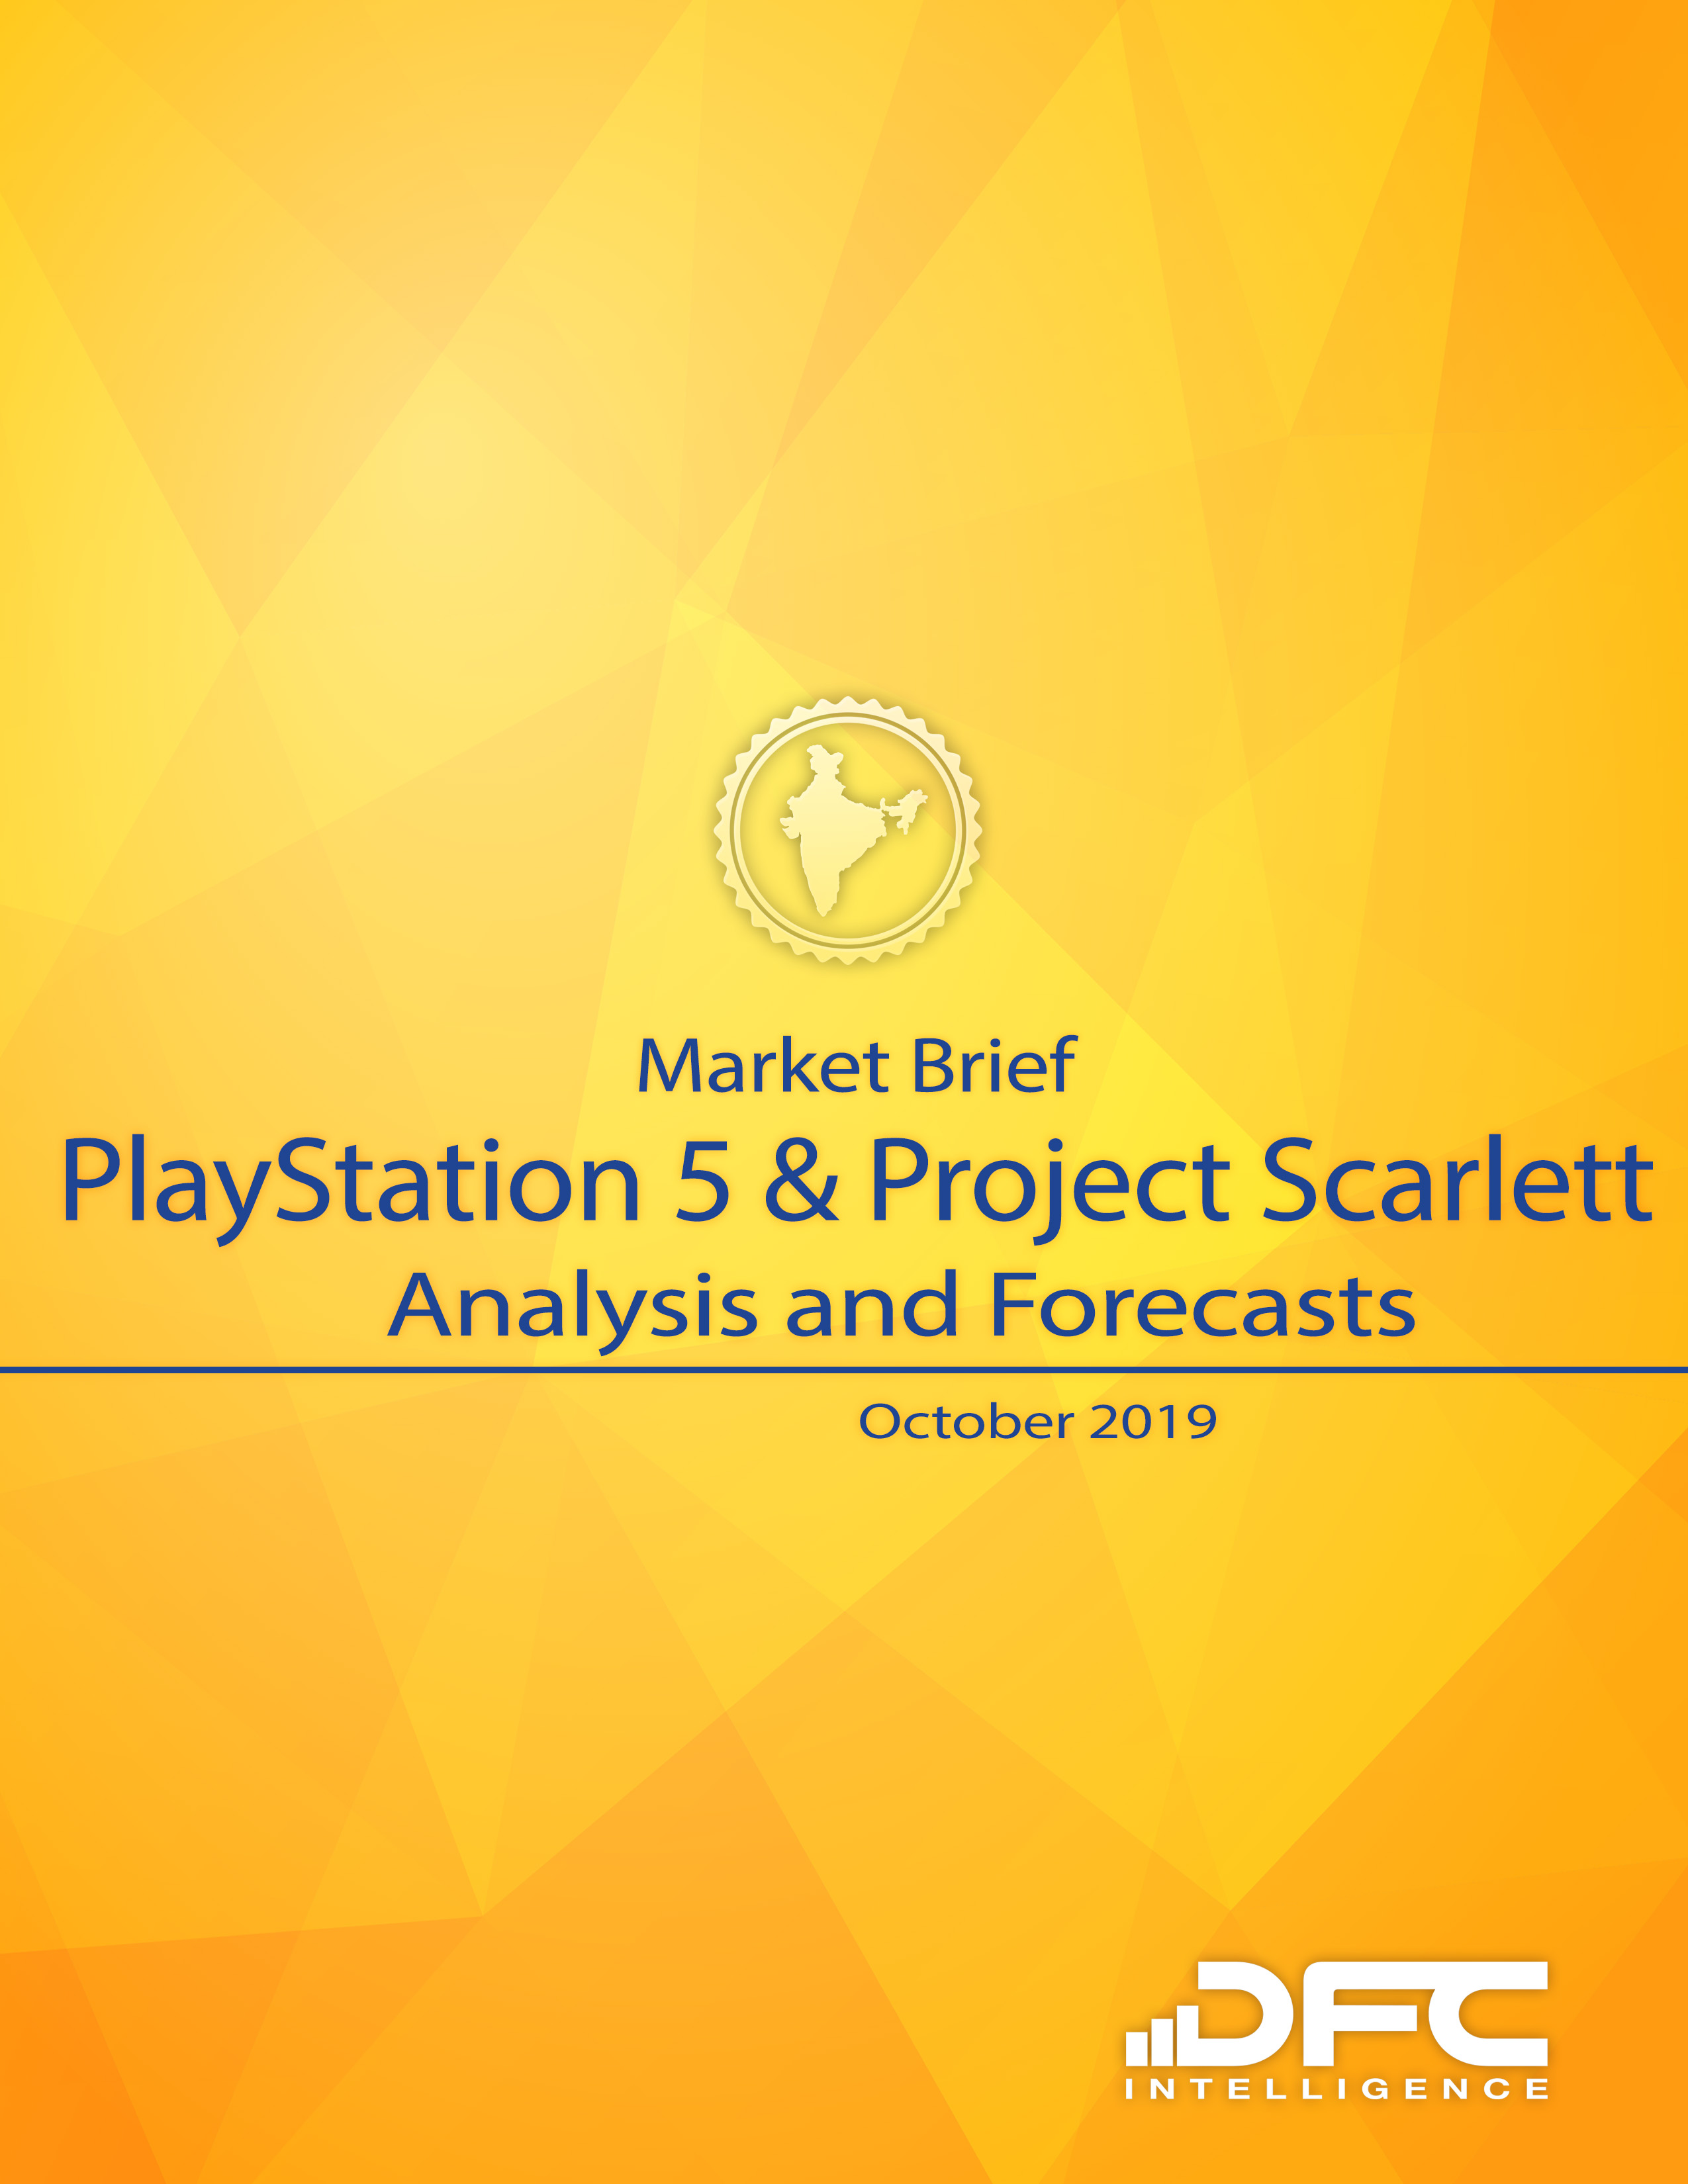 Project Scarlett Forecasts